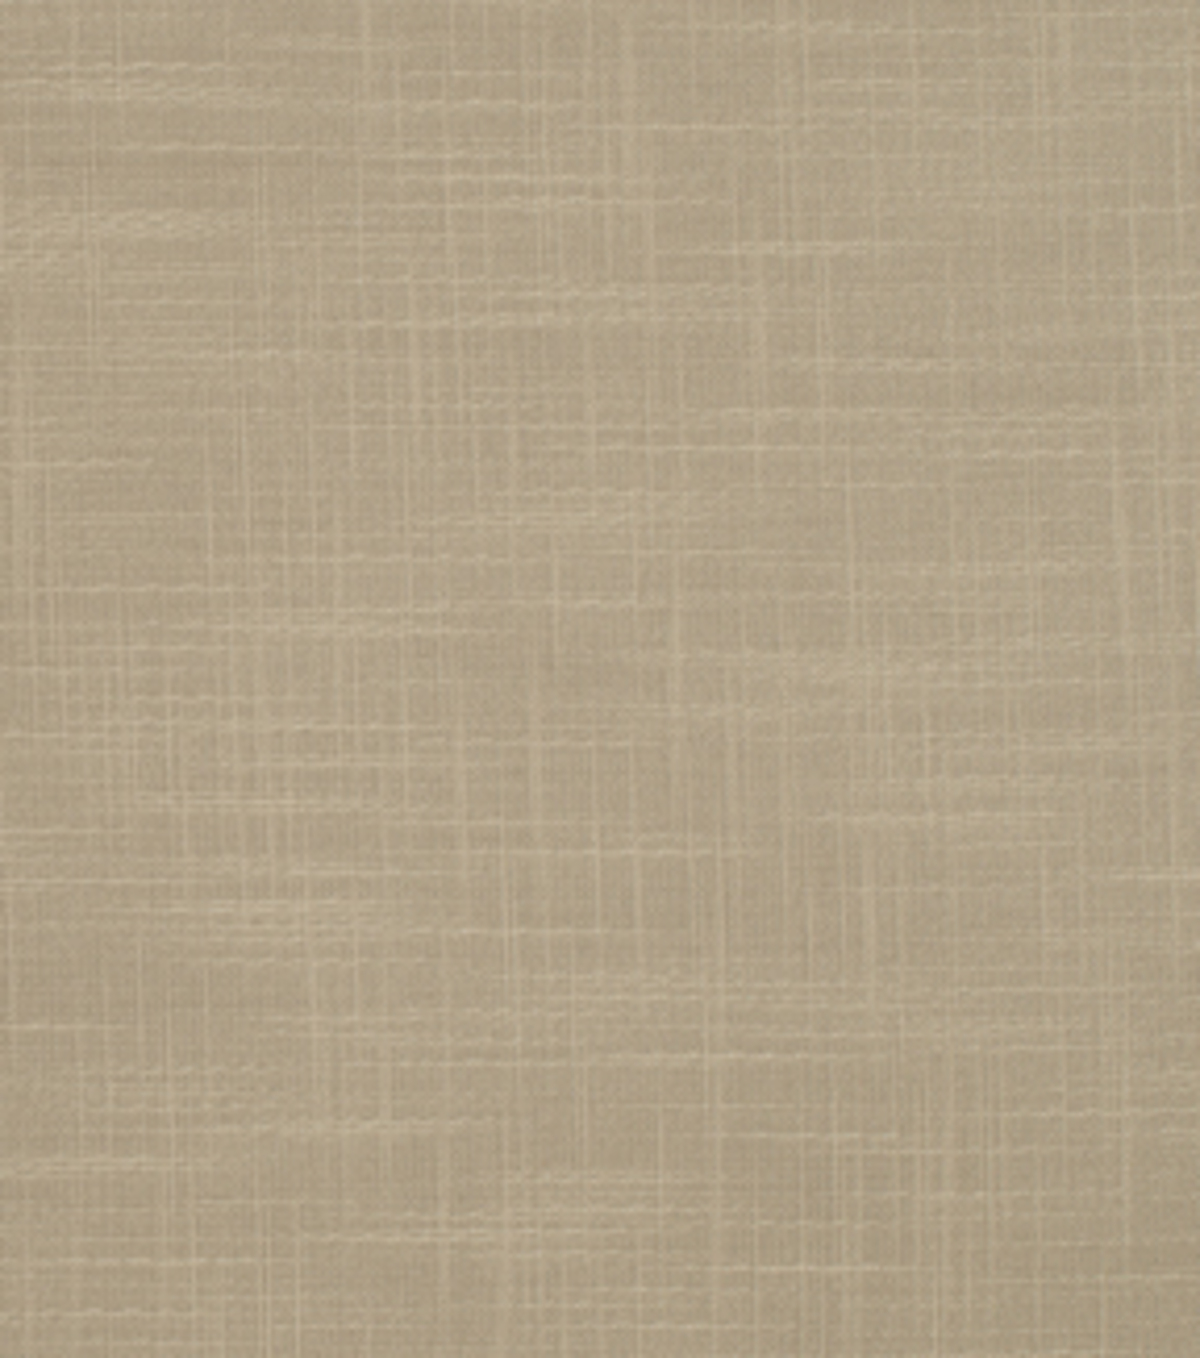 Home Decor 8\u0022x8\u0022 Fabric Swatch-Eaton Square Banderas Camel